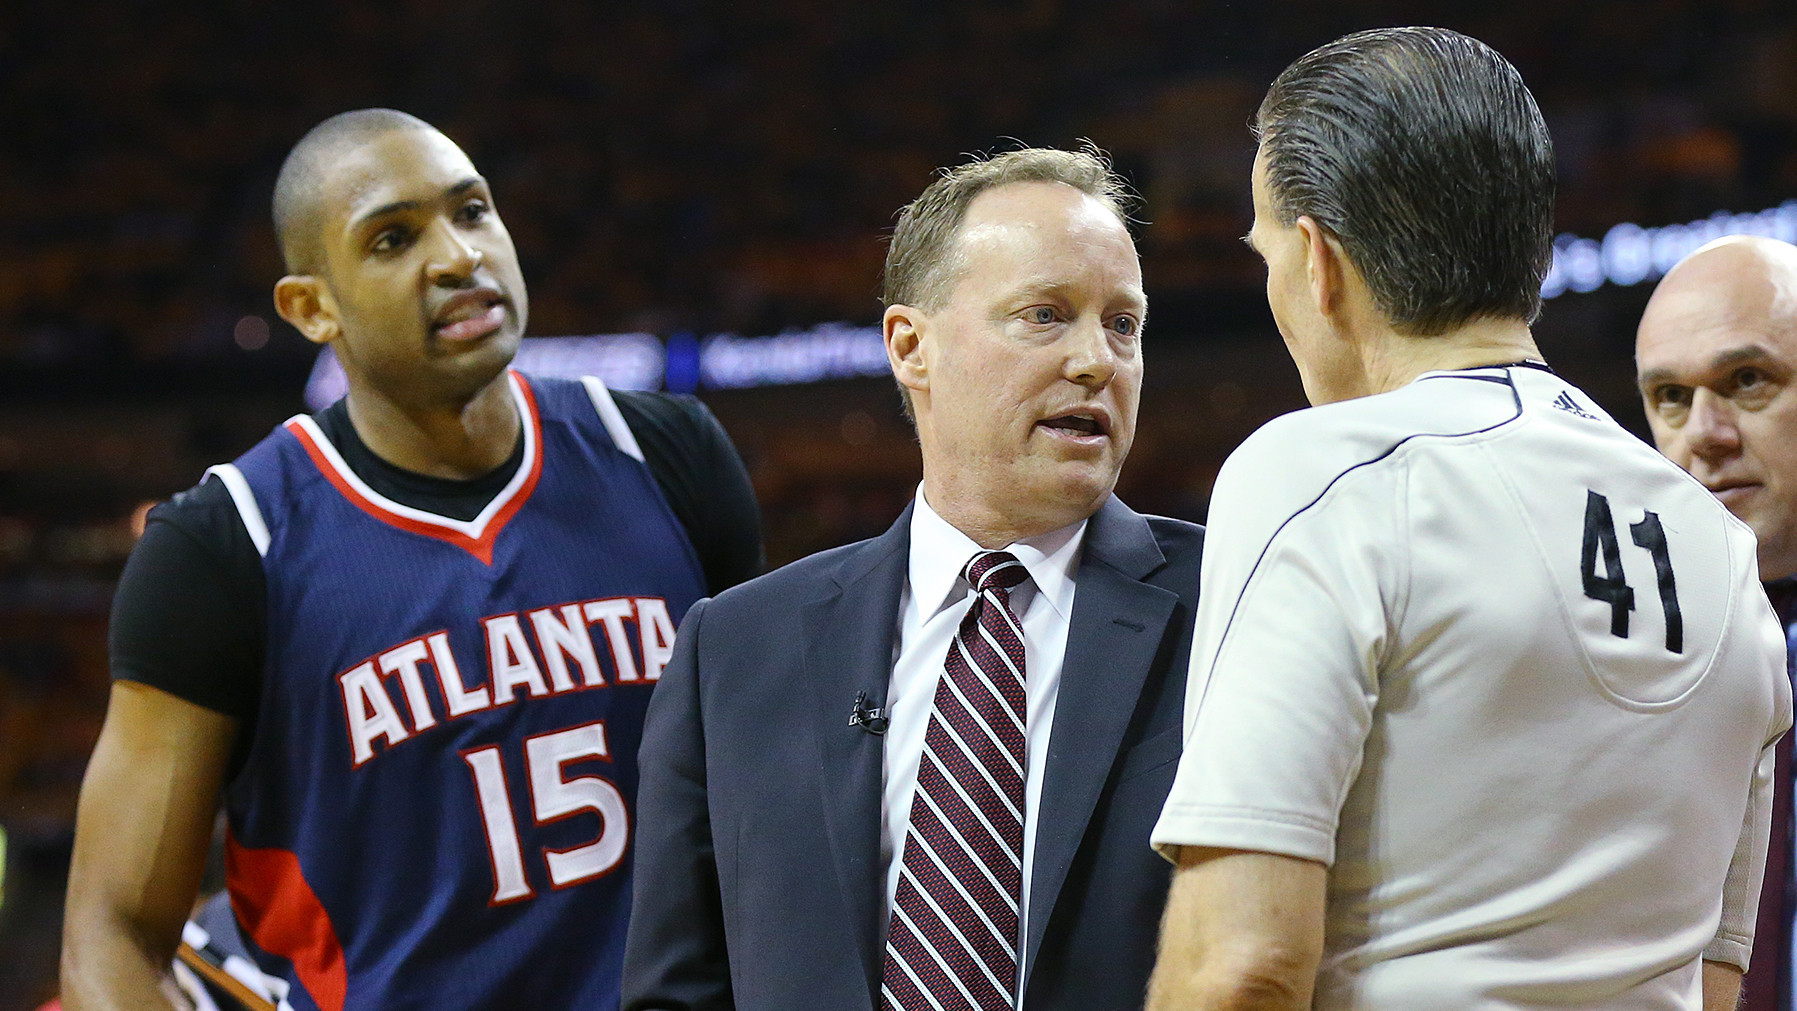 NBA defends decision to eject Al Horford in Hawks' loss to Cavaliers